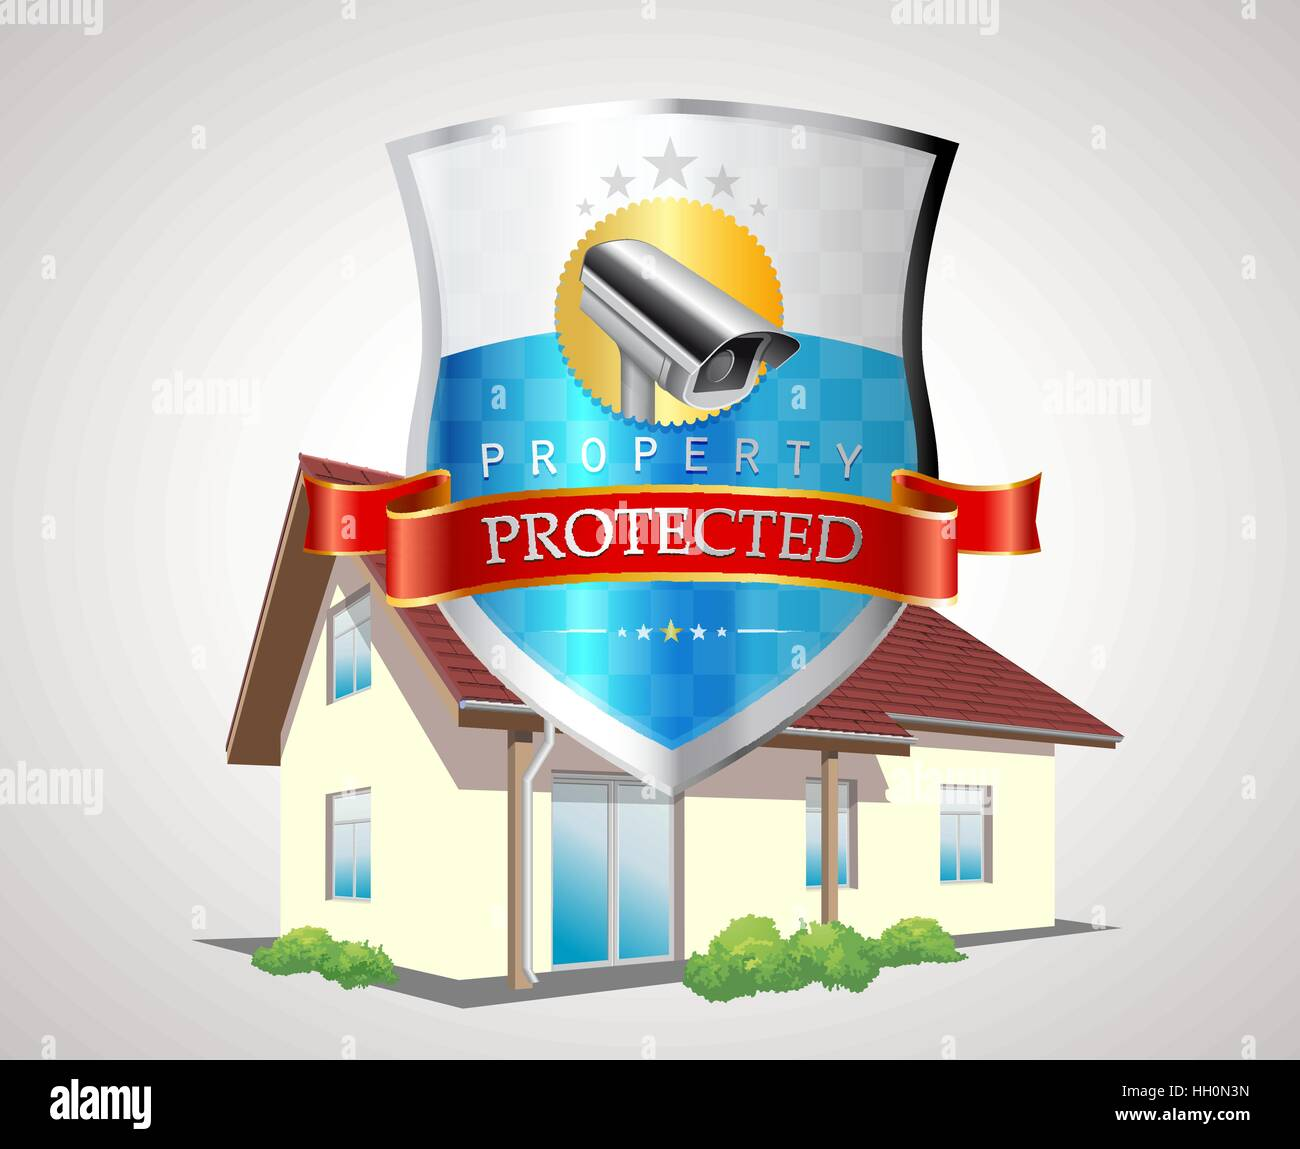 Security camera - CCTV concept - Stock Vector